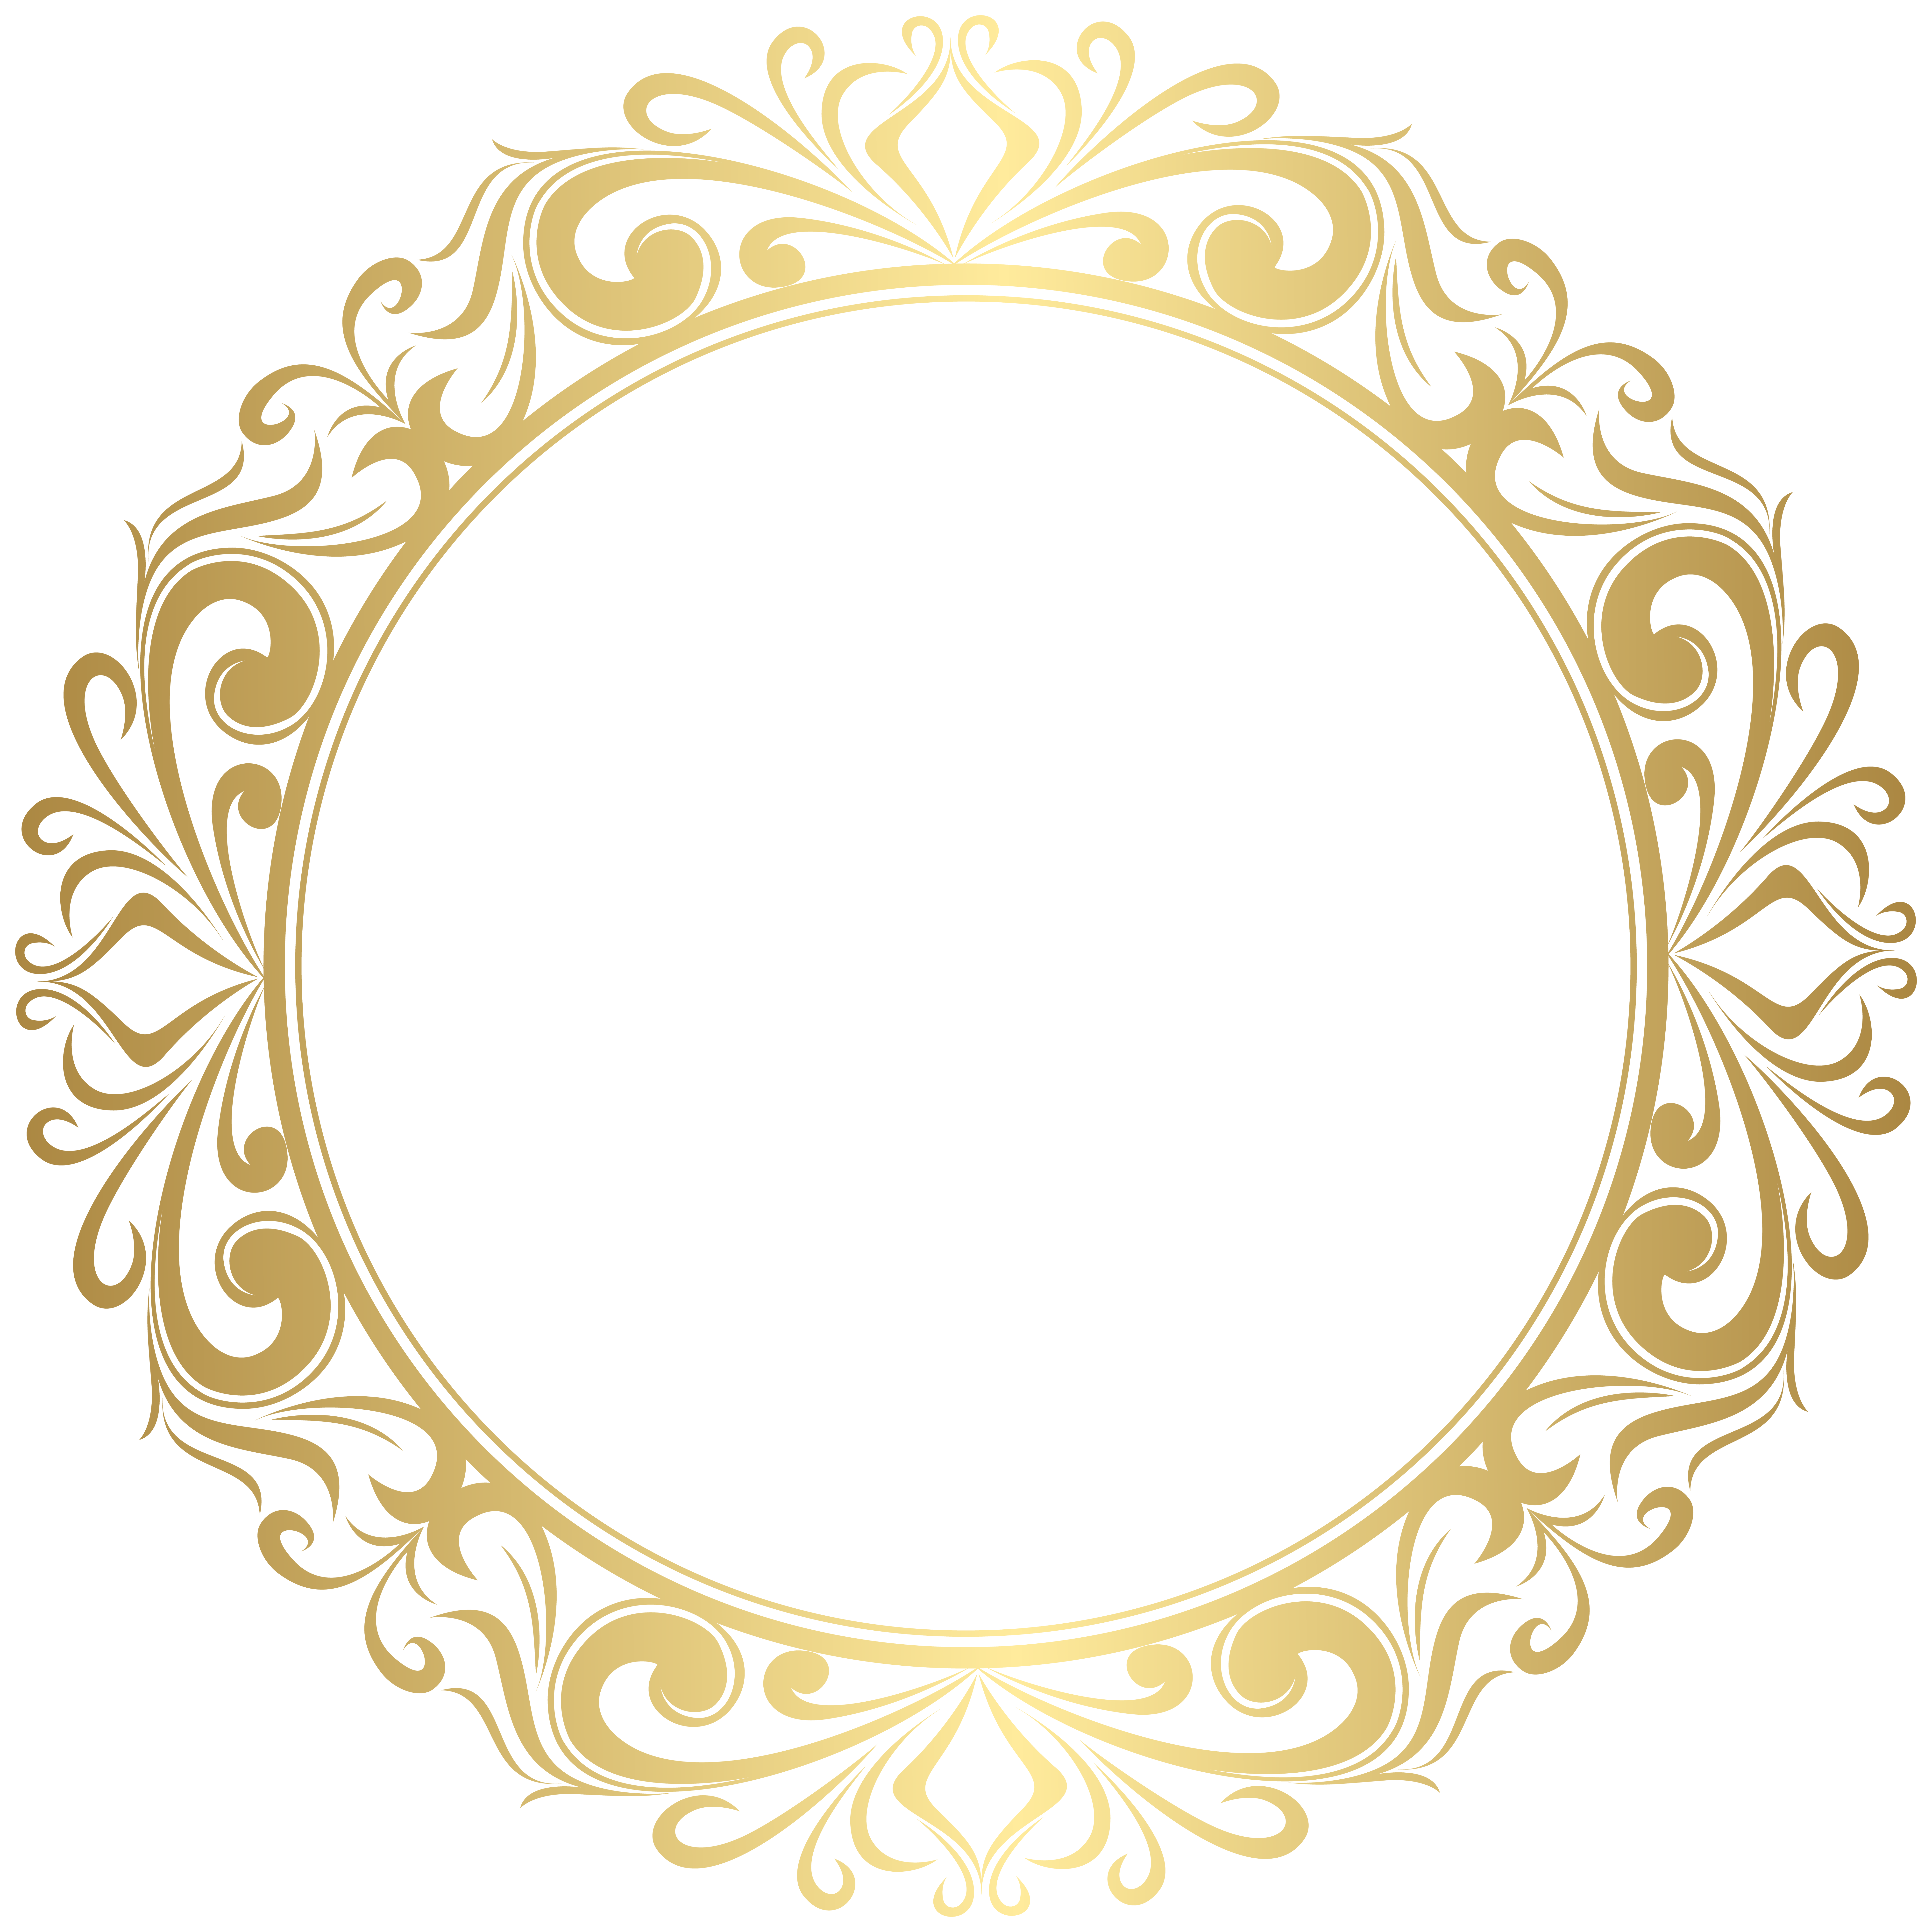 Round Gold Border Frame Png Clipart Gallery Yopriceville High Quality Images And Transparent Png Free Clipart Free Clip Art Clip Art Gold Border